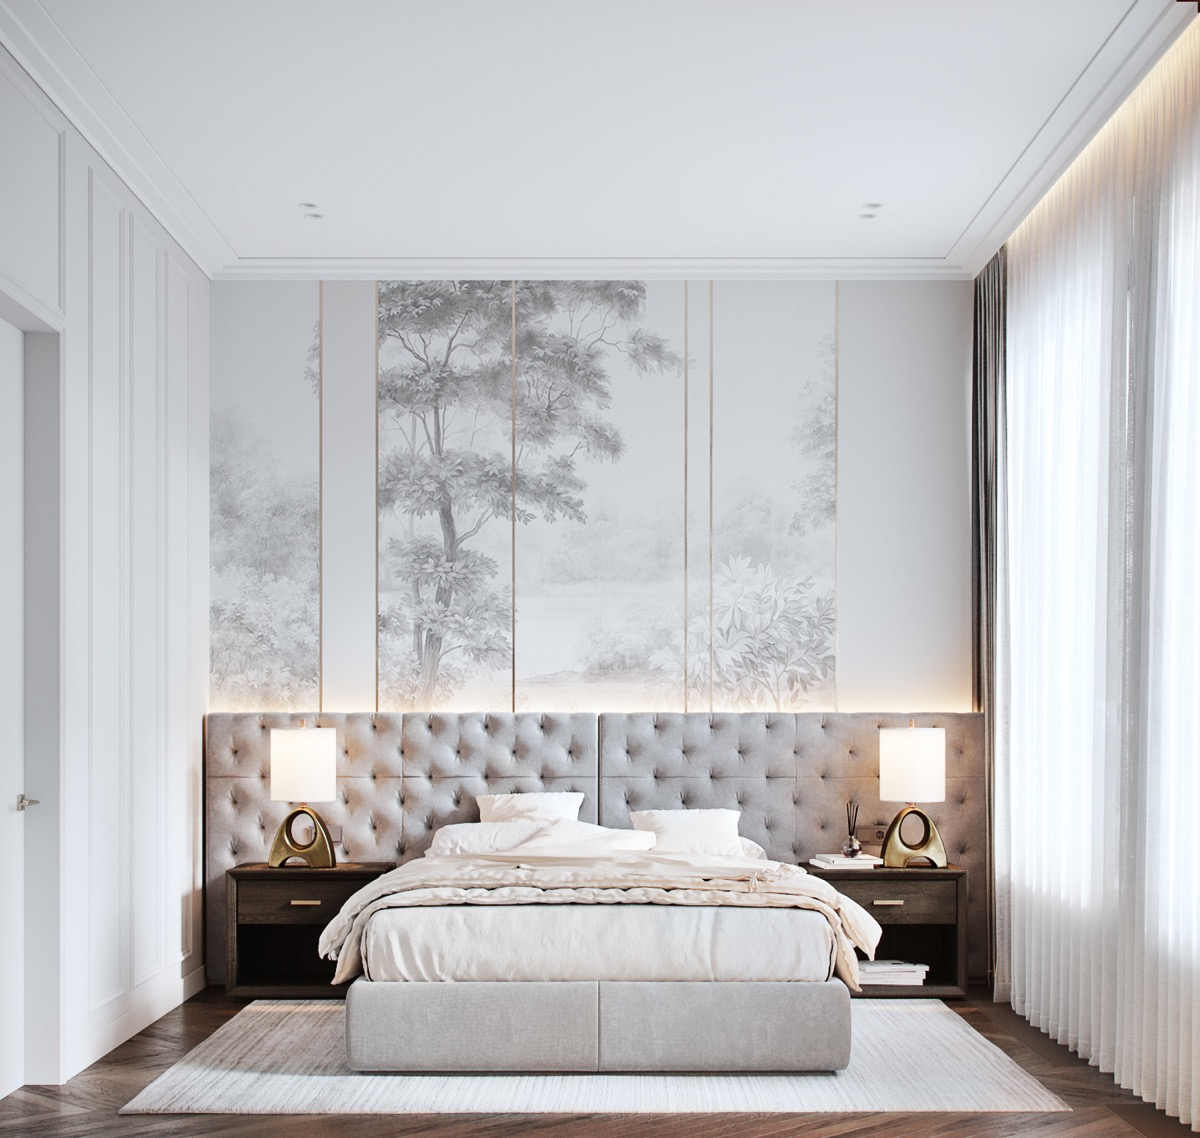 Home Design Ideas and Tips: transitional bedroom design tips and ideas for light colors and subtle